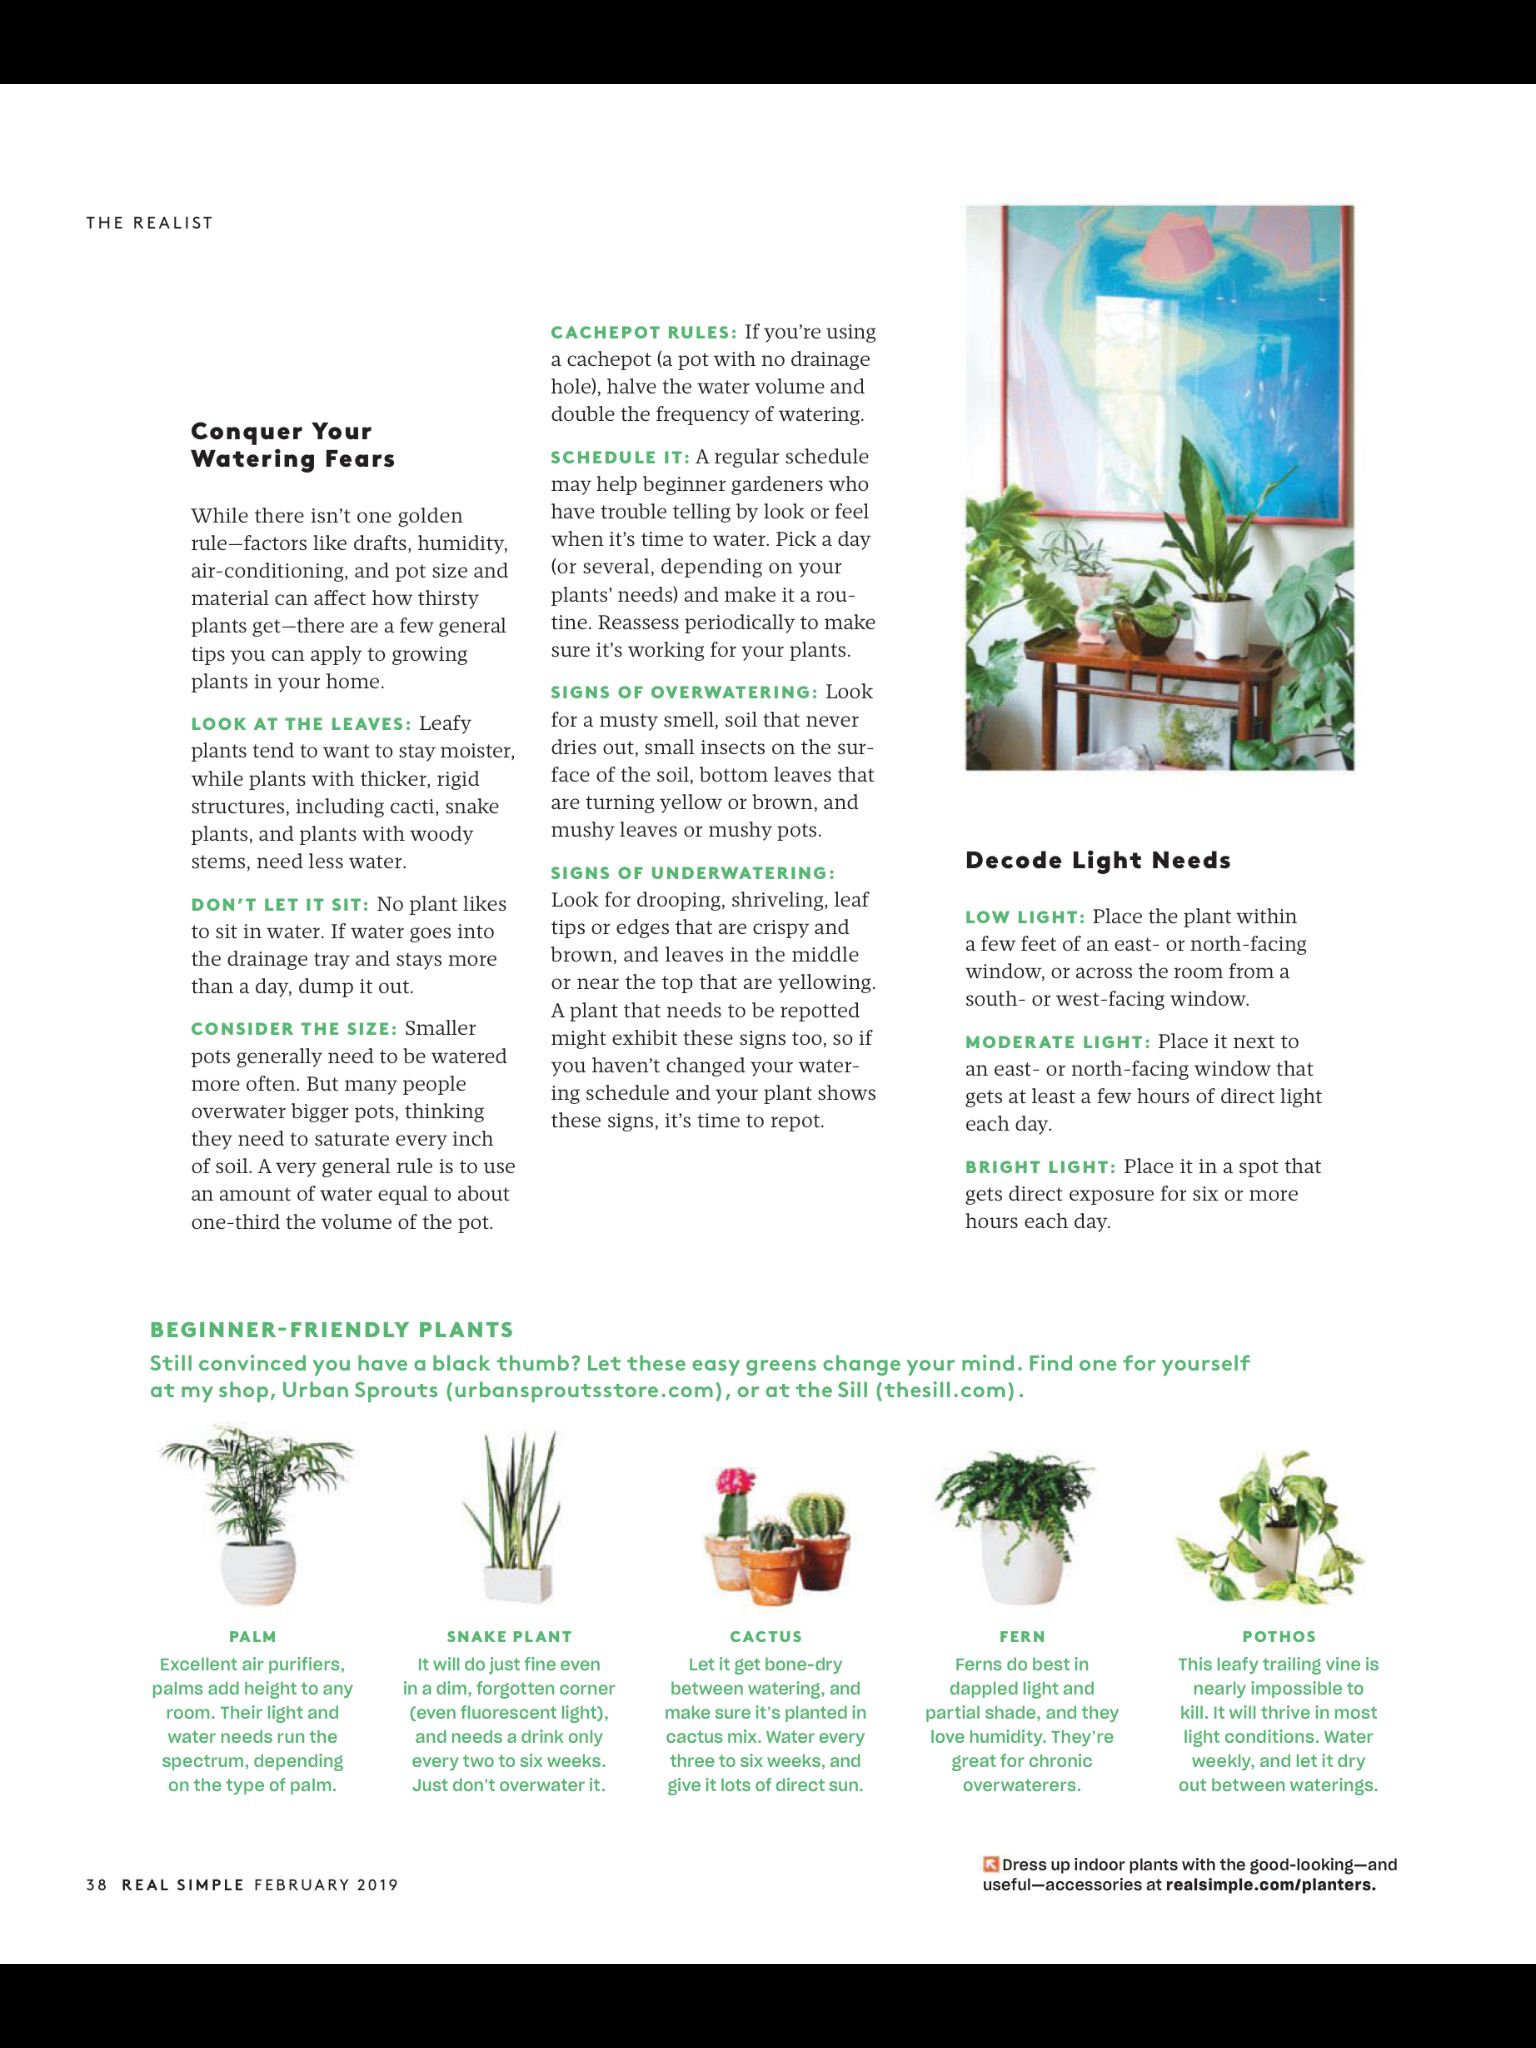 How Not To Kill Your Indoor Plants A Guide From Real Simple